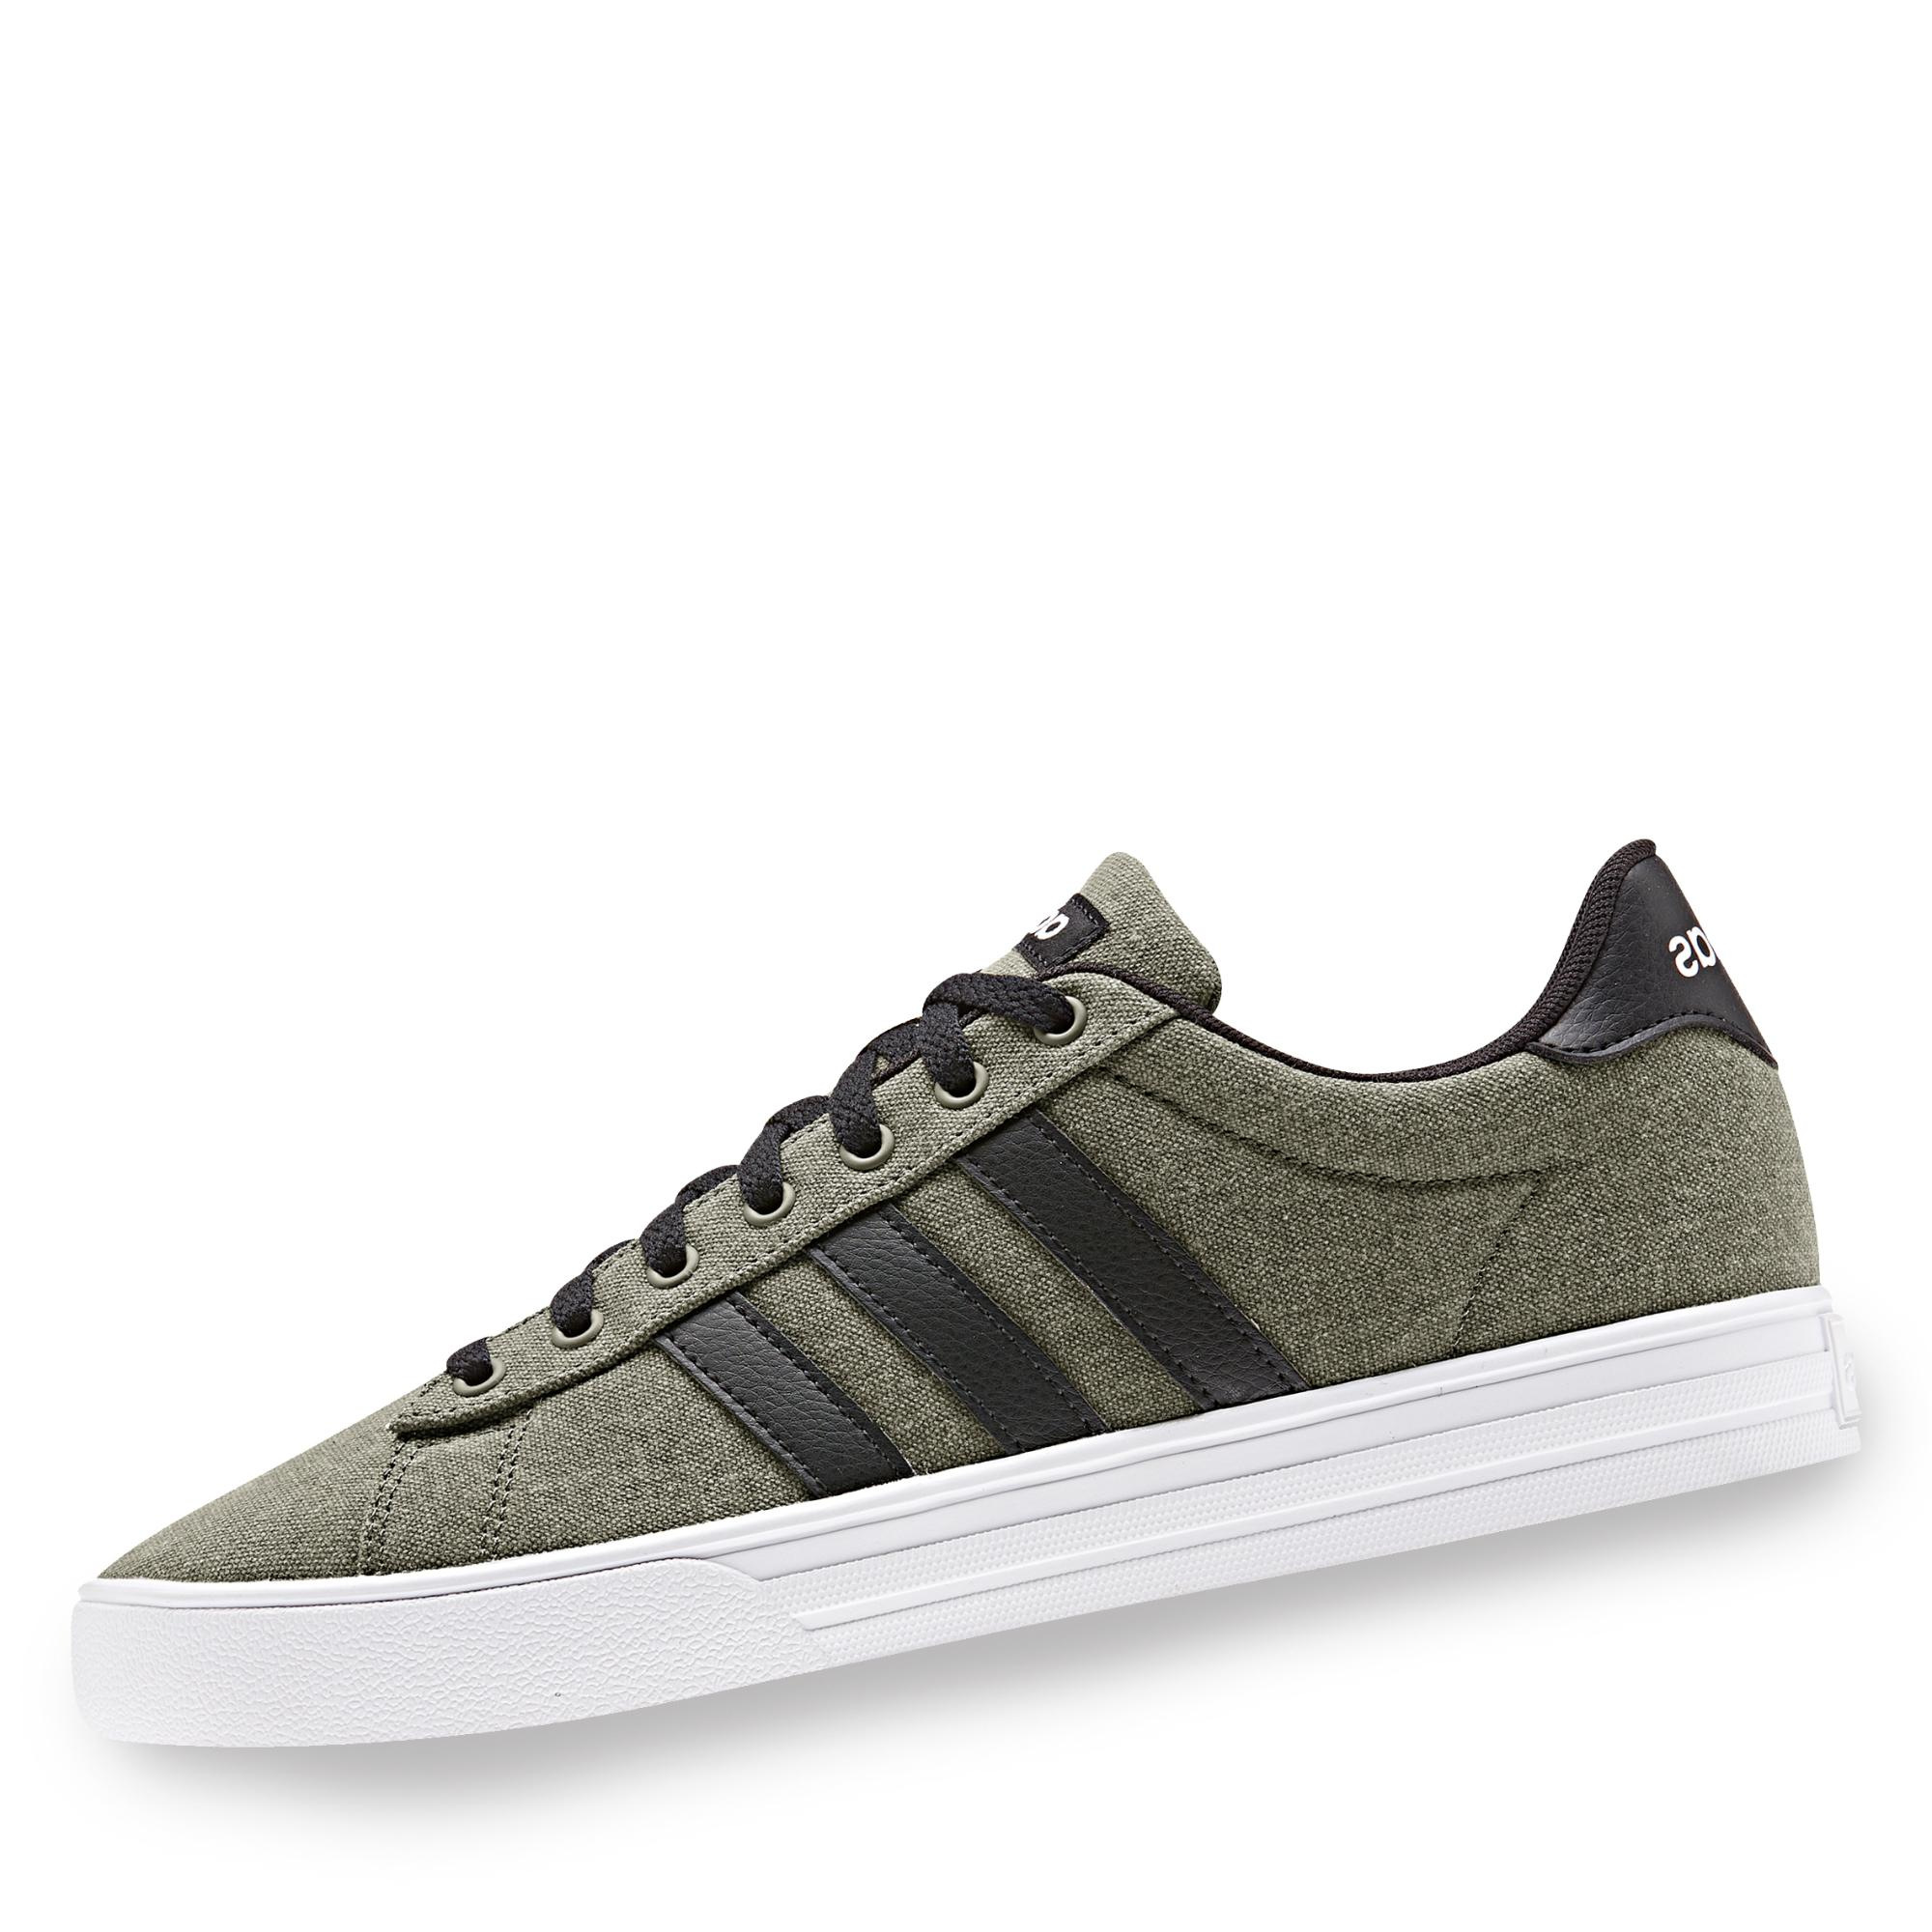 official site new style best choice adidas Daily 2.0 Sneaker - khaki/schwarz | Markenschuhe